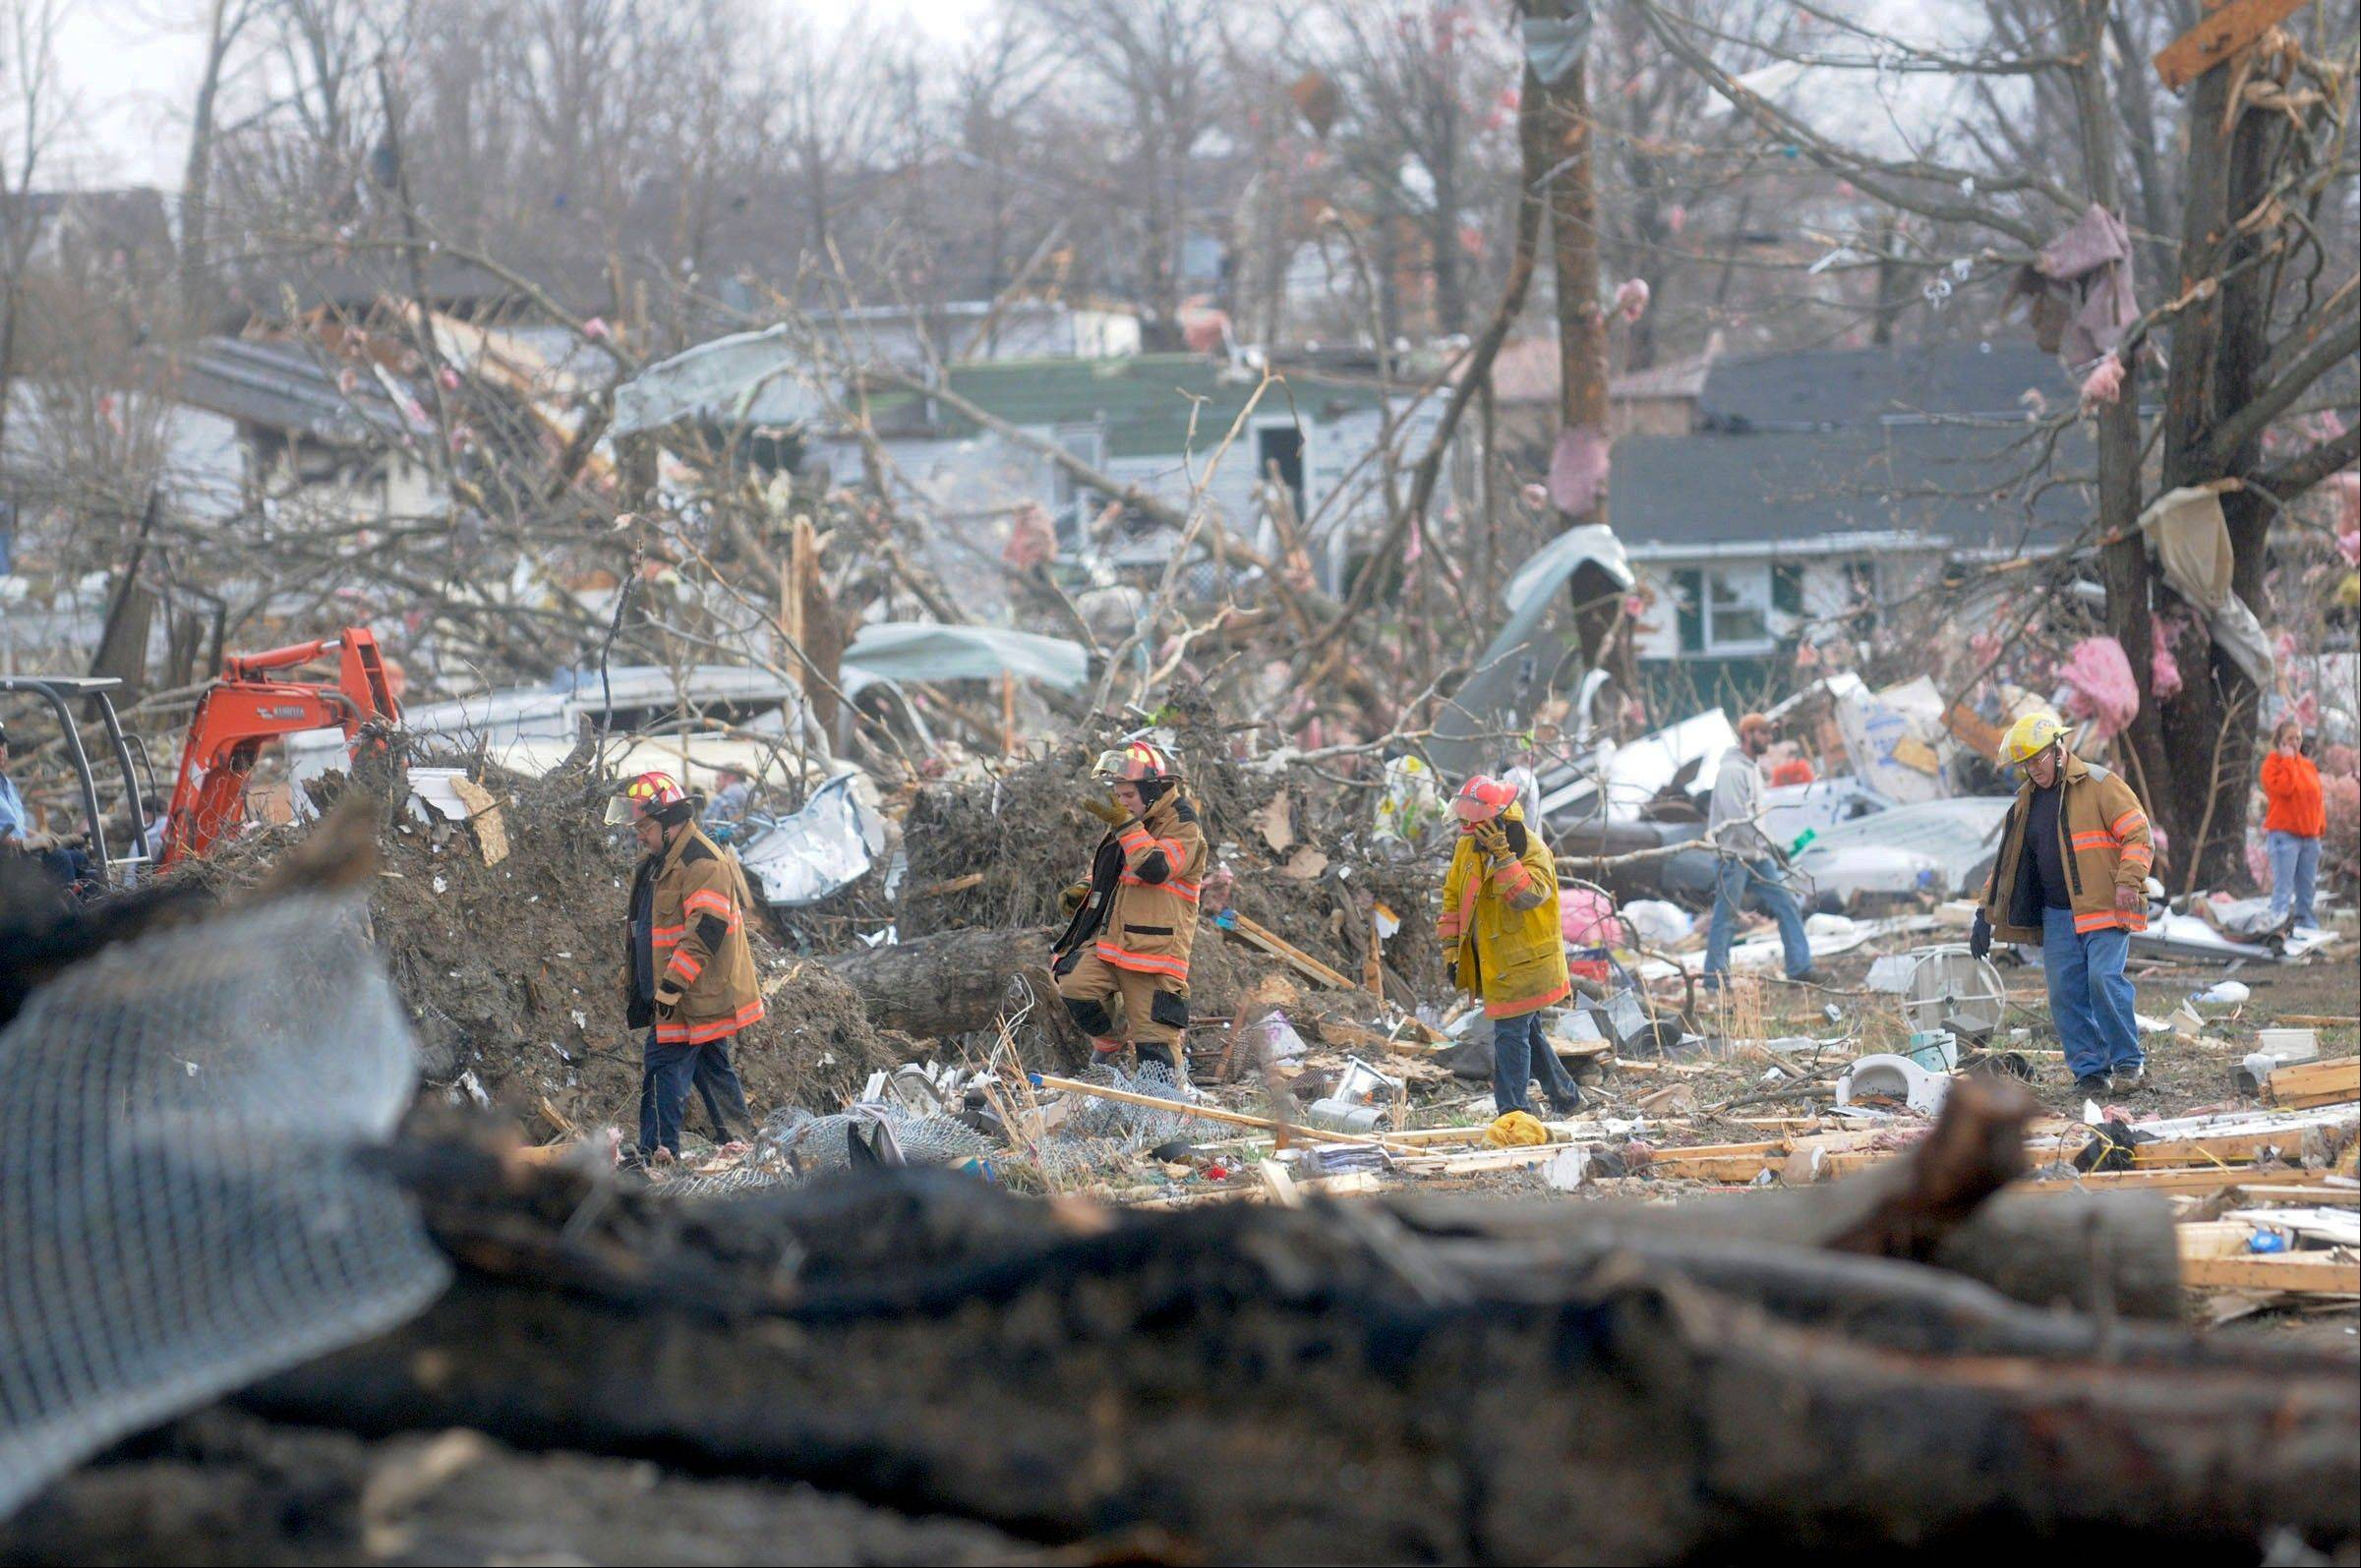 Emergency crews comb through some of the damage after a severe storm hit in the early morning hours on Wednesday, Feb. 29, 2012, in Harrisrbug, Ill. A severe pre-dawn storm pounded portions of southern Illinois on Wednesday. Several deaths have been reported in Harrisburg and left the city's medical center scrambling to treat an influx of injured, the hospital's top administrator said.